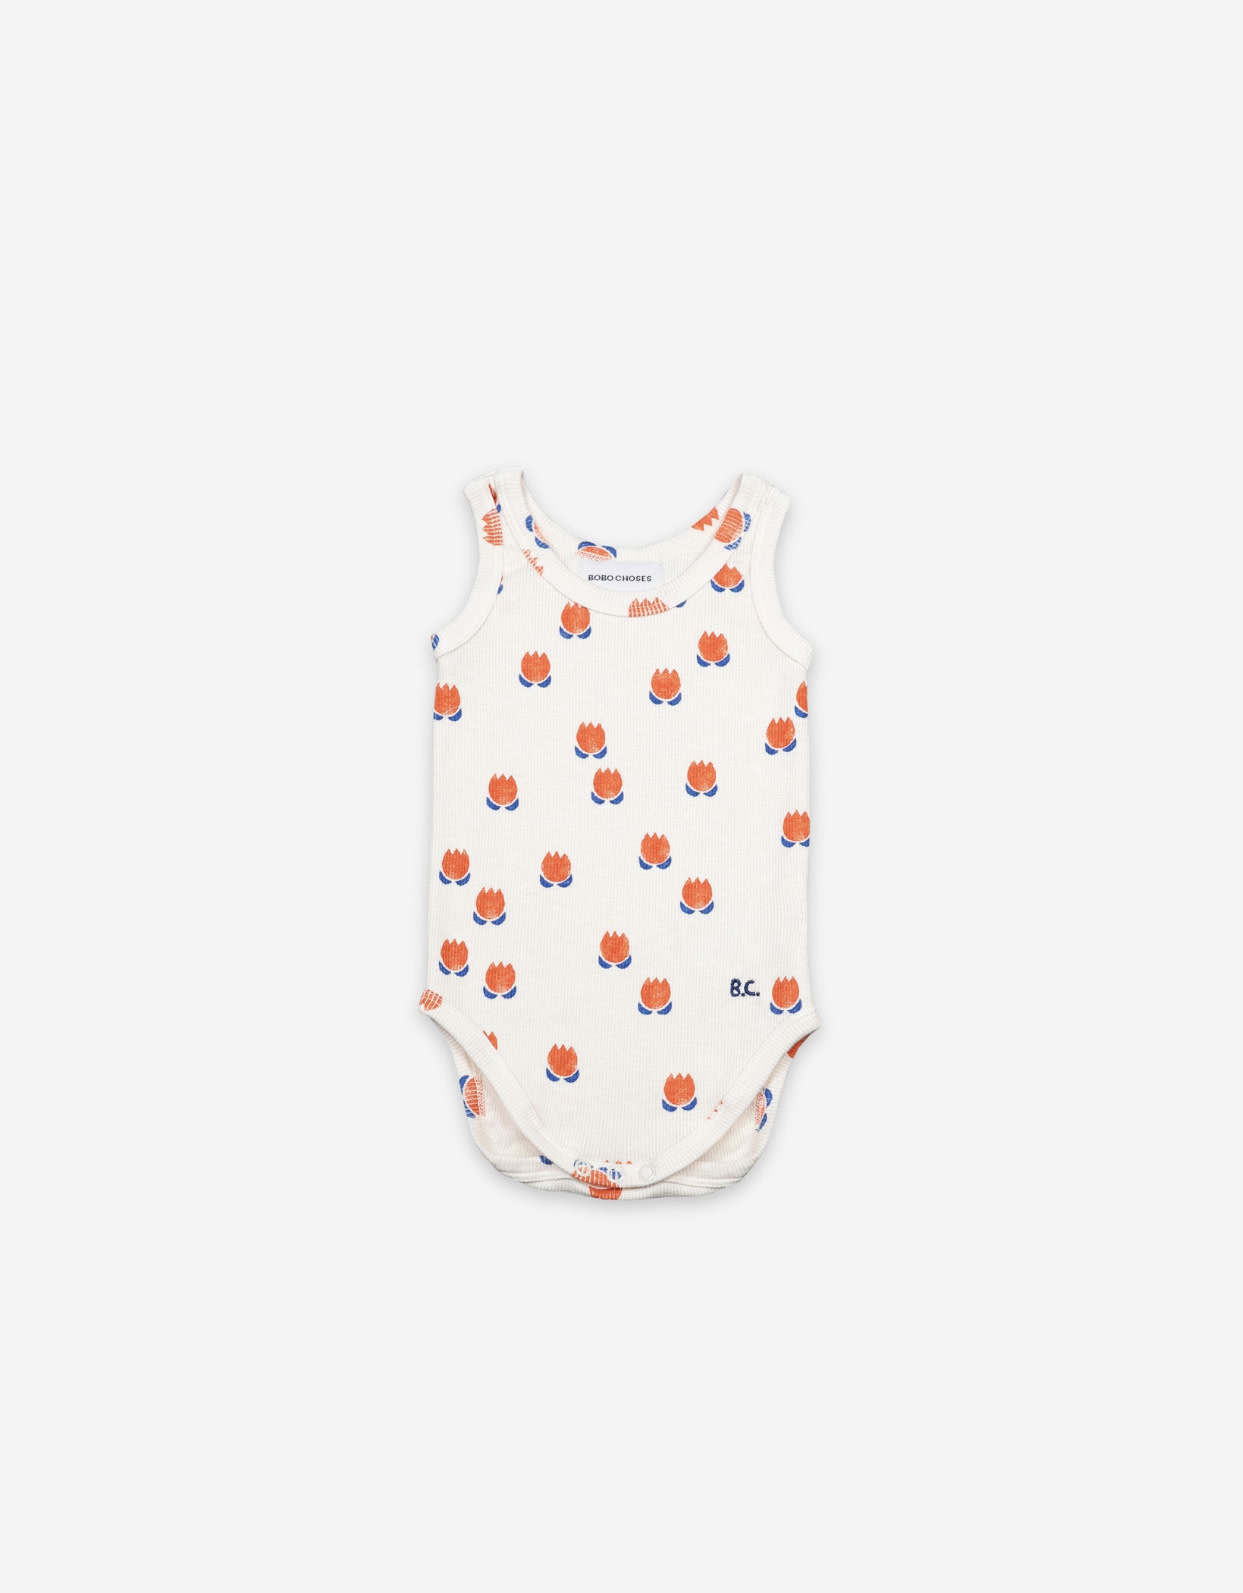 BOBO CHOSES Chocolate Flowers All Over Baby Onesie